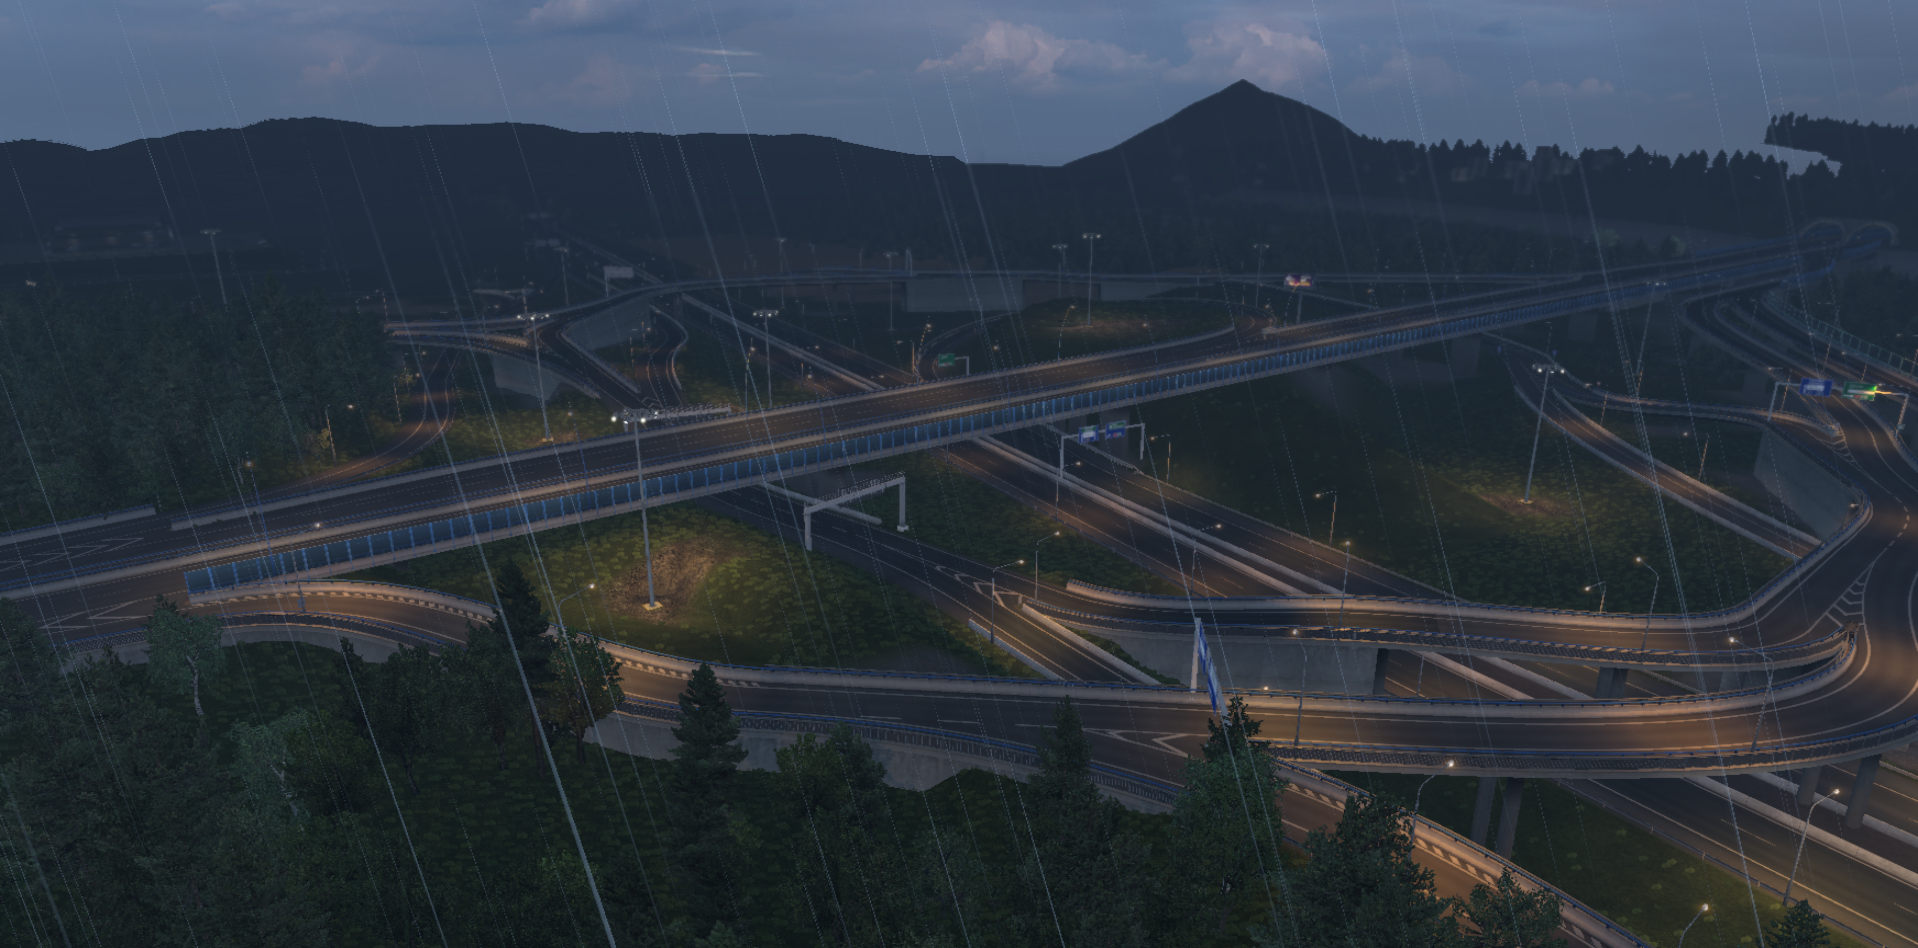 ets2_20210804_144533_00.png